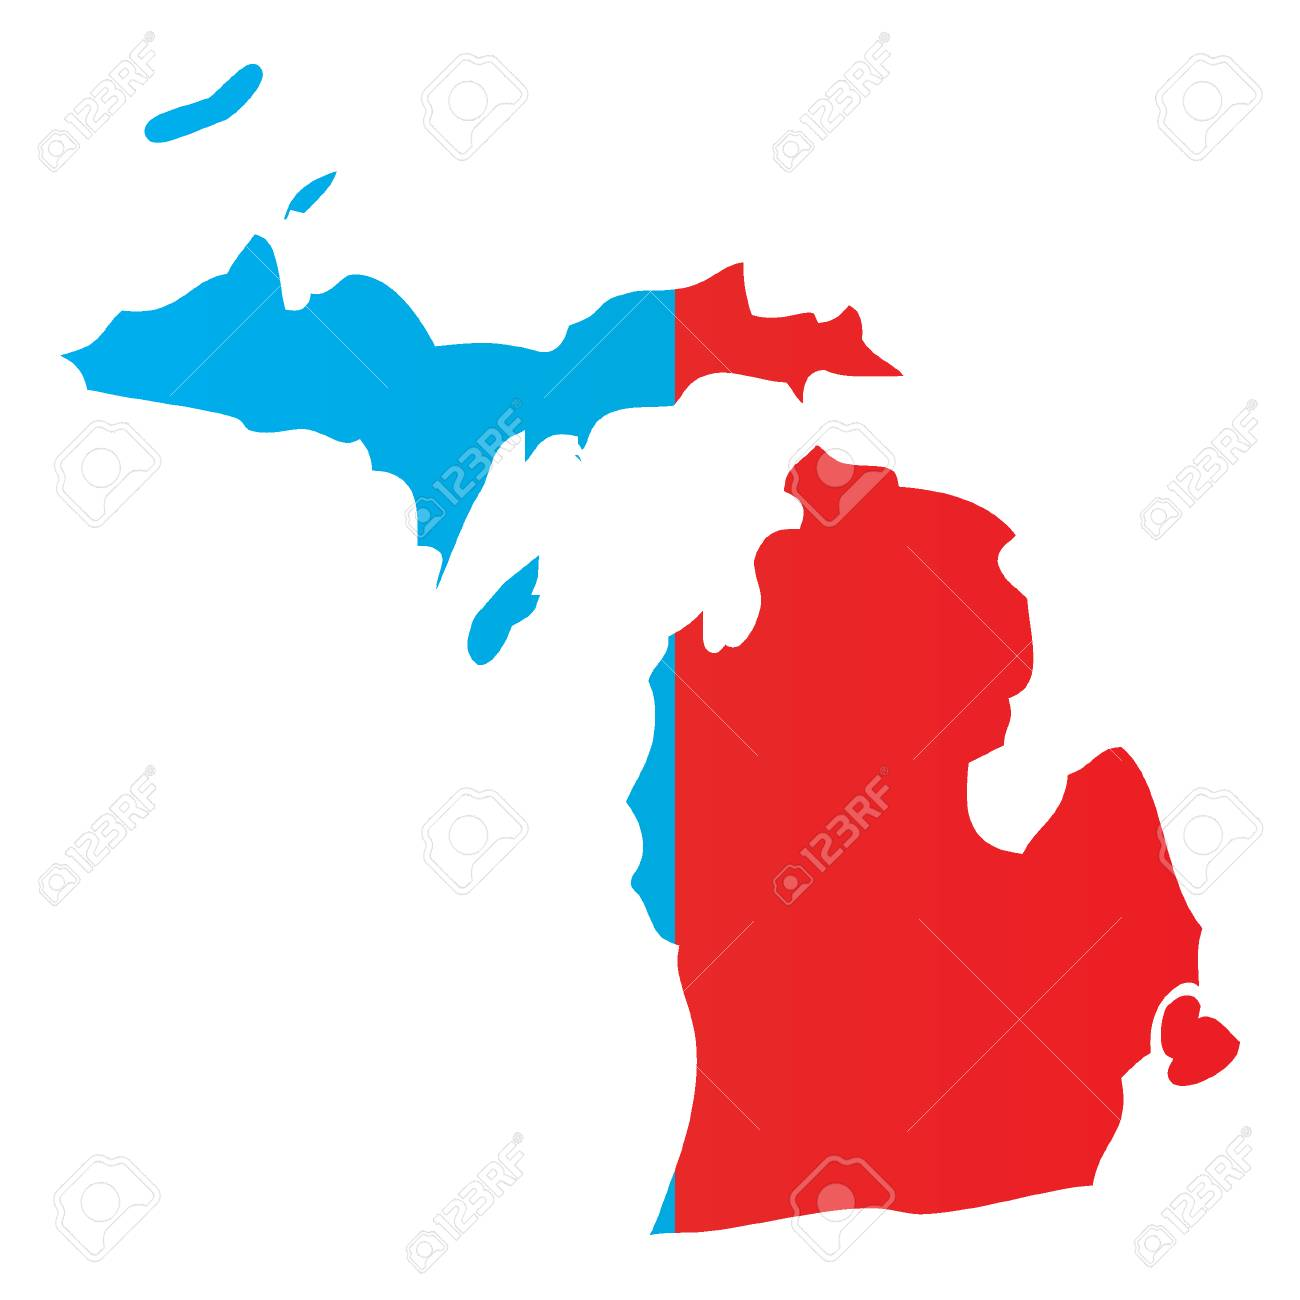 The State Of Michigan Map.A Map Of The The State Michigan Stock Photo Picture And Royalty